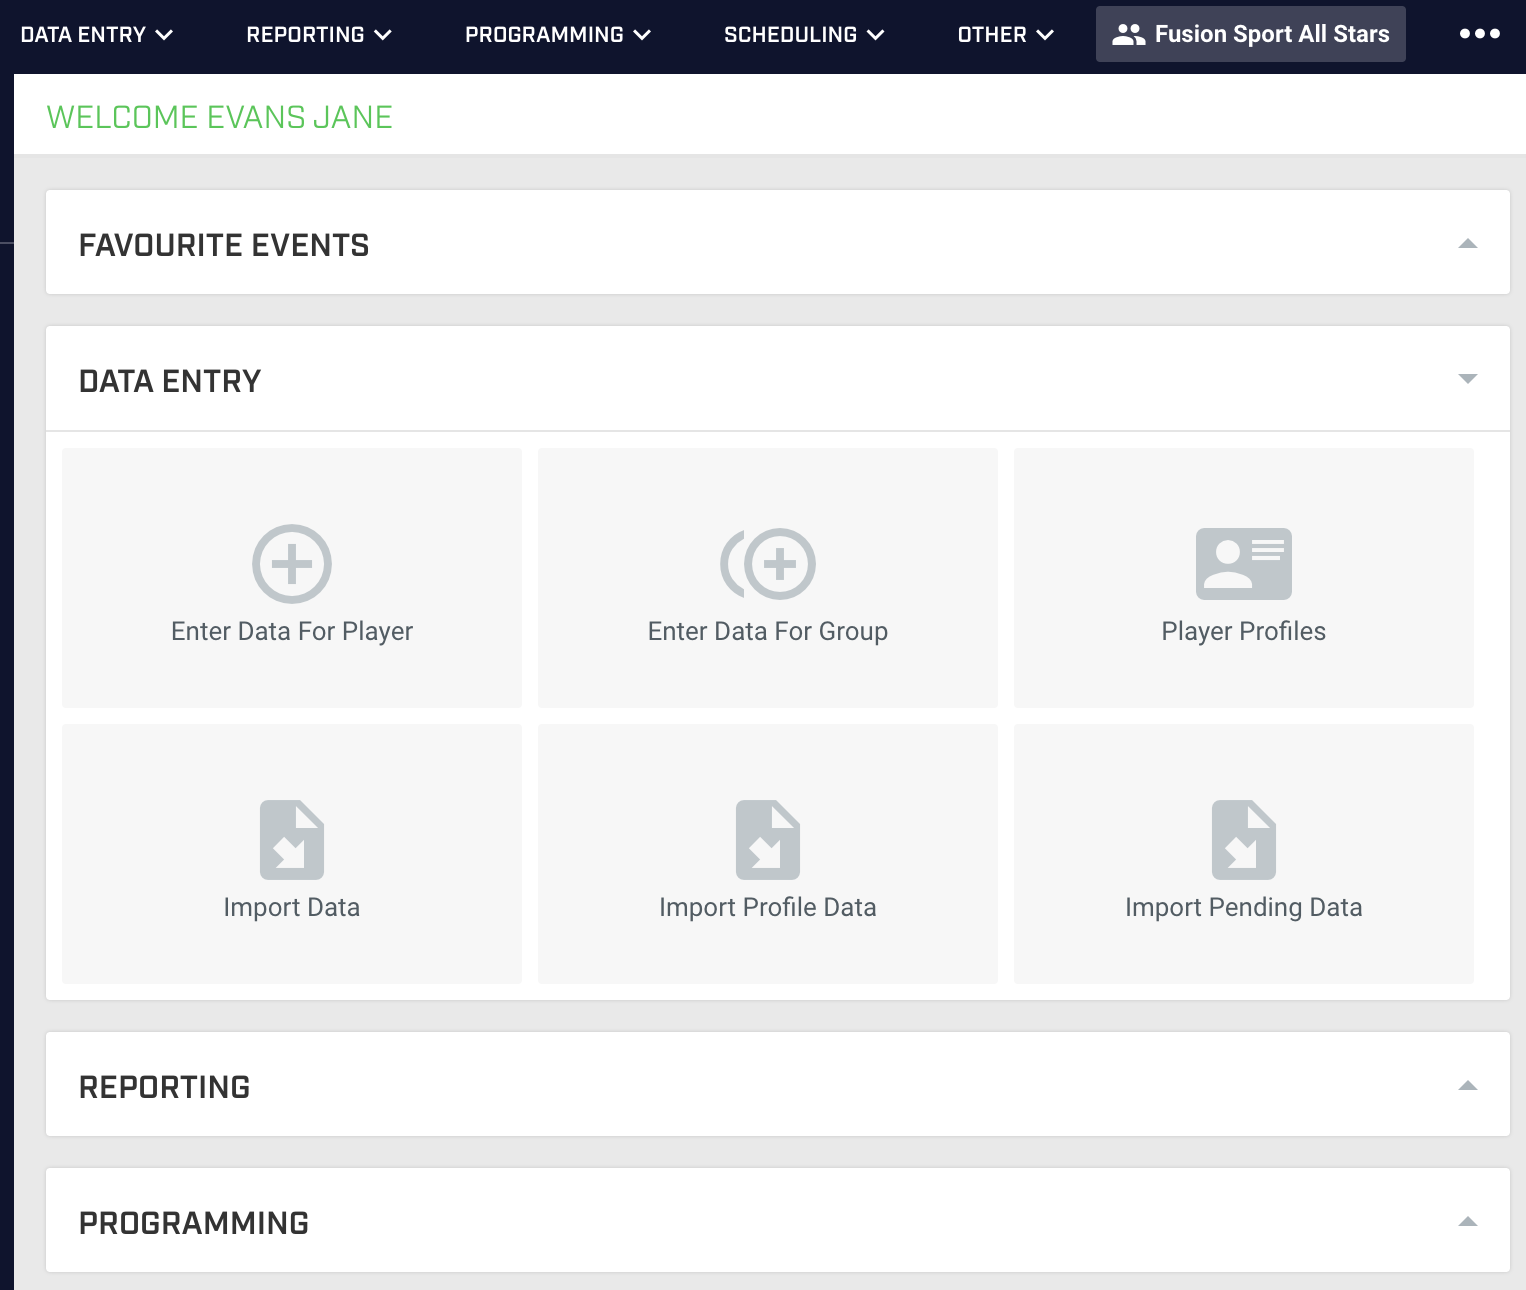 A screenshot showing the new font on the home page